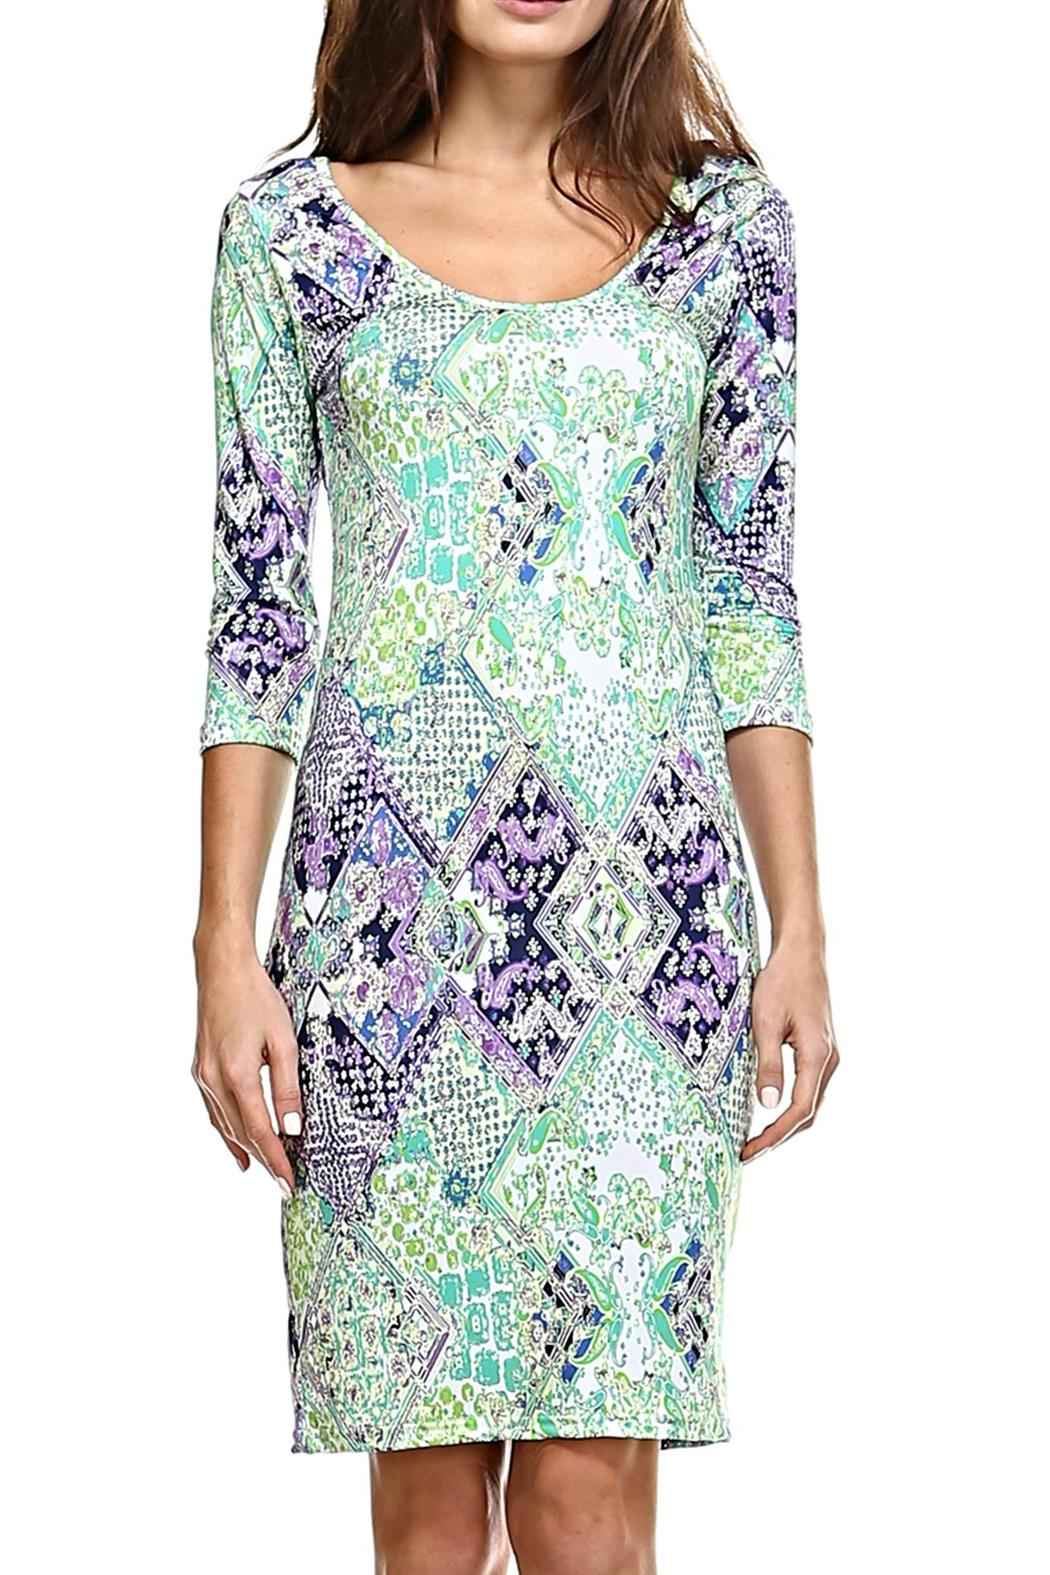 Jean-Pierre Klifa  India Pattern Dress - Front Cropped Image